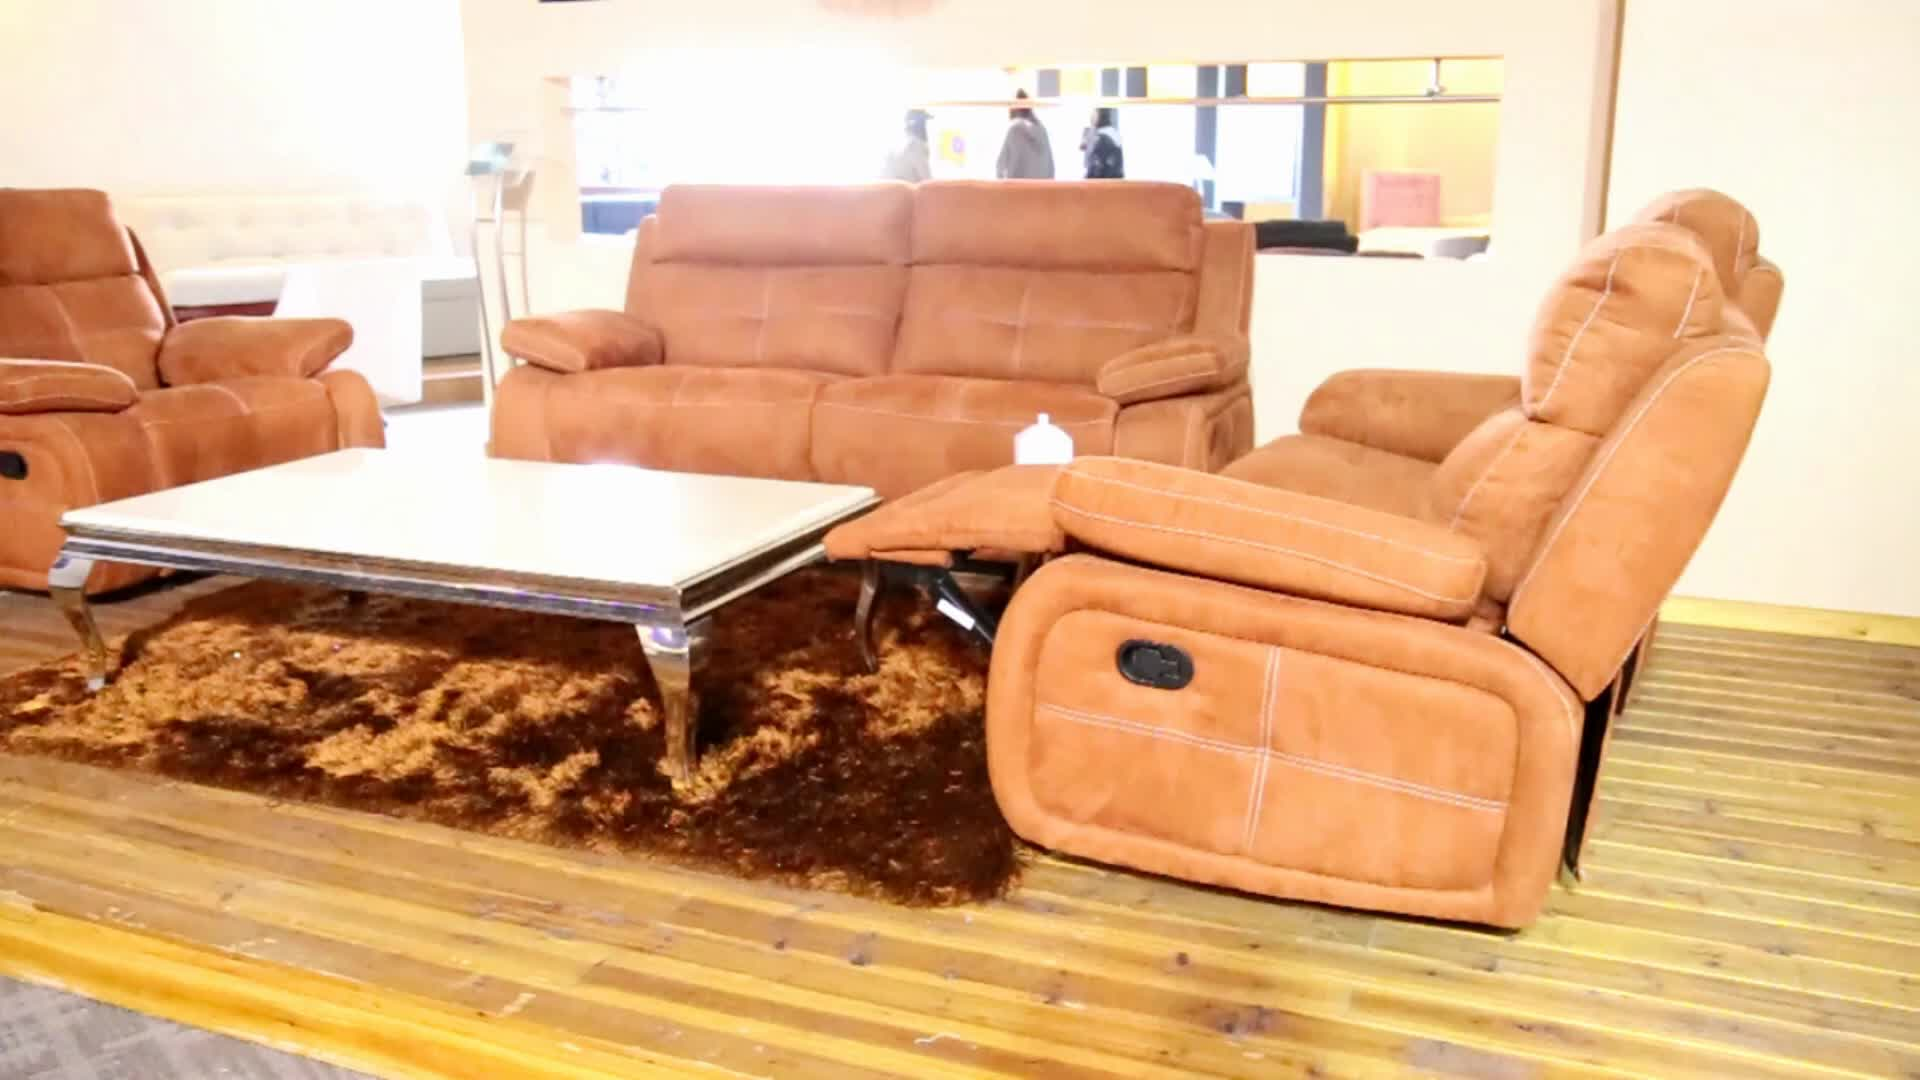 Yellow orange 1 seater fabric chaise lounge recliner sofa for 1 seater chaise lounge